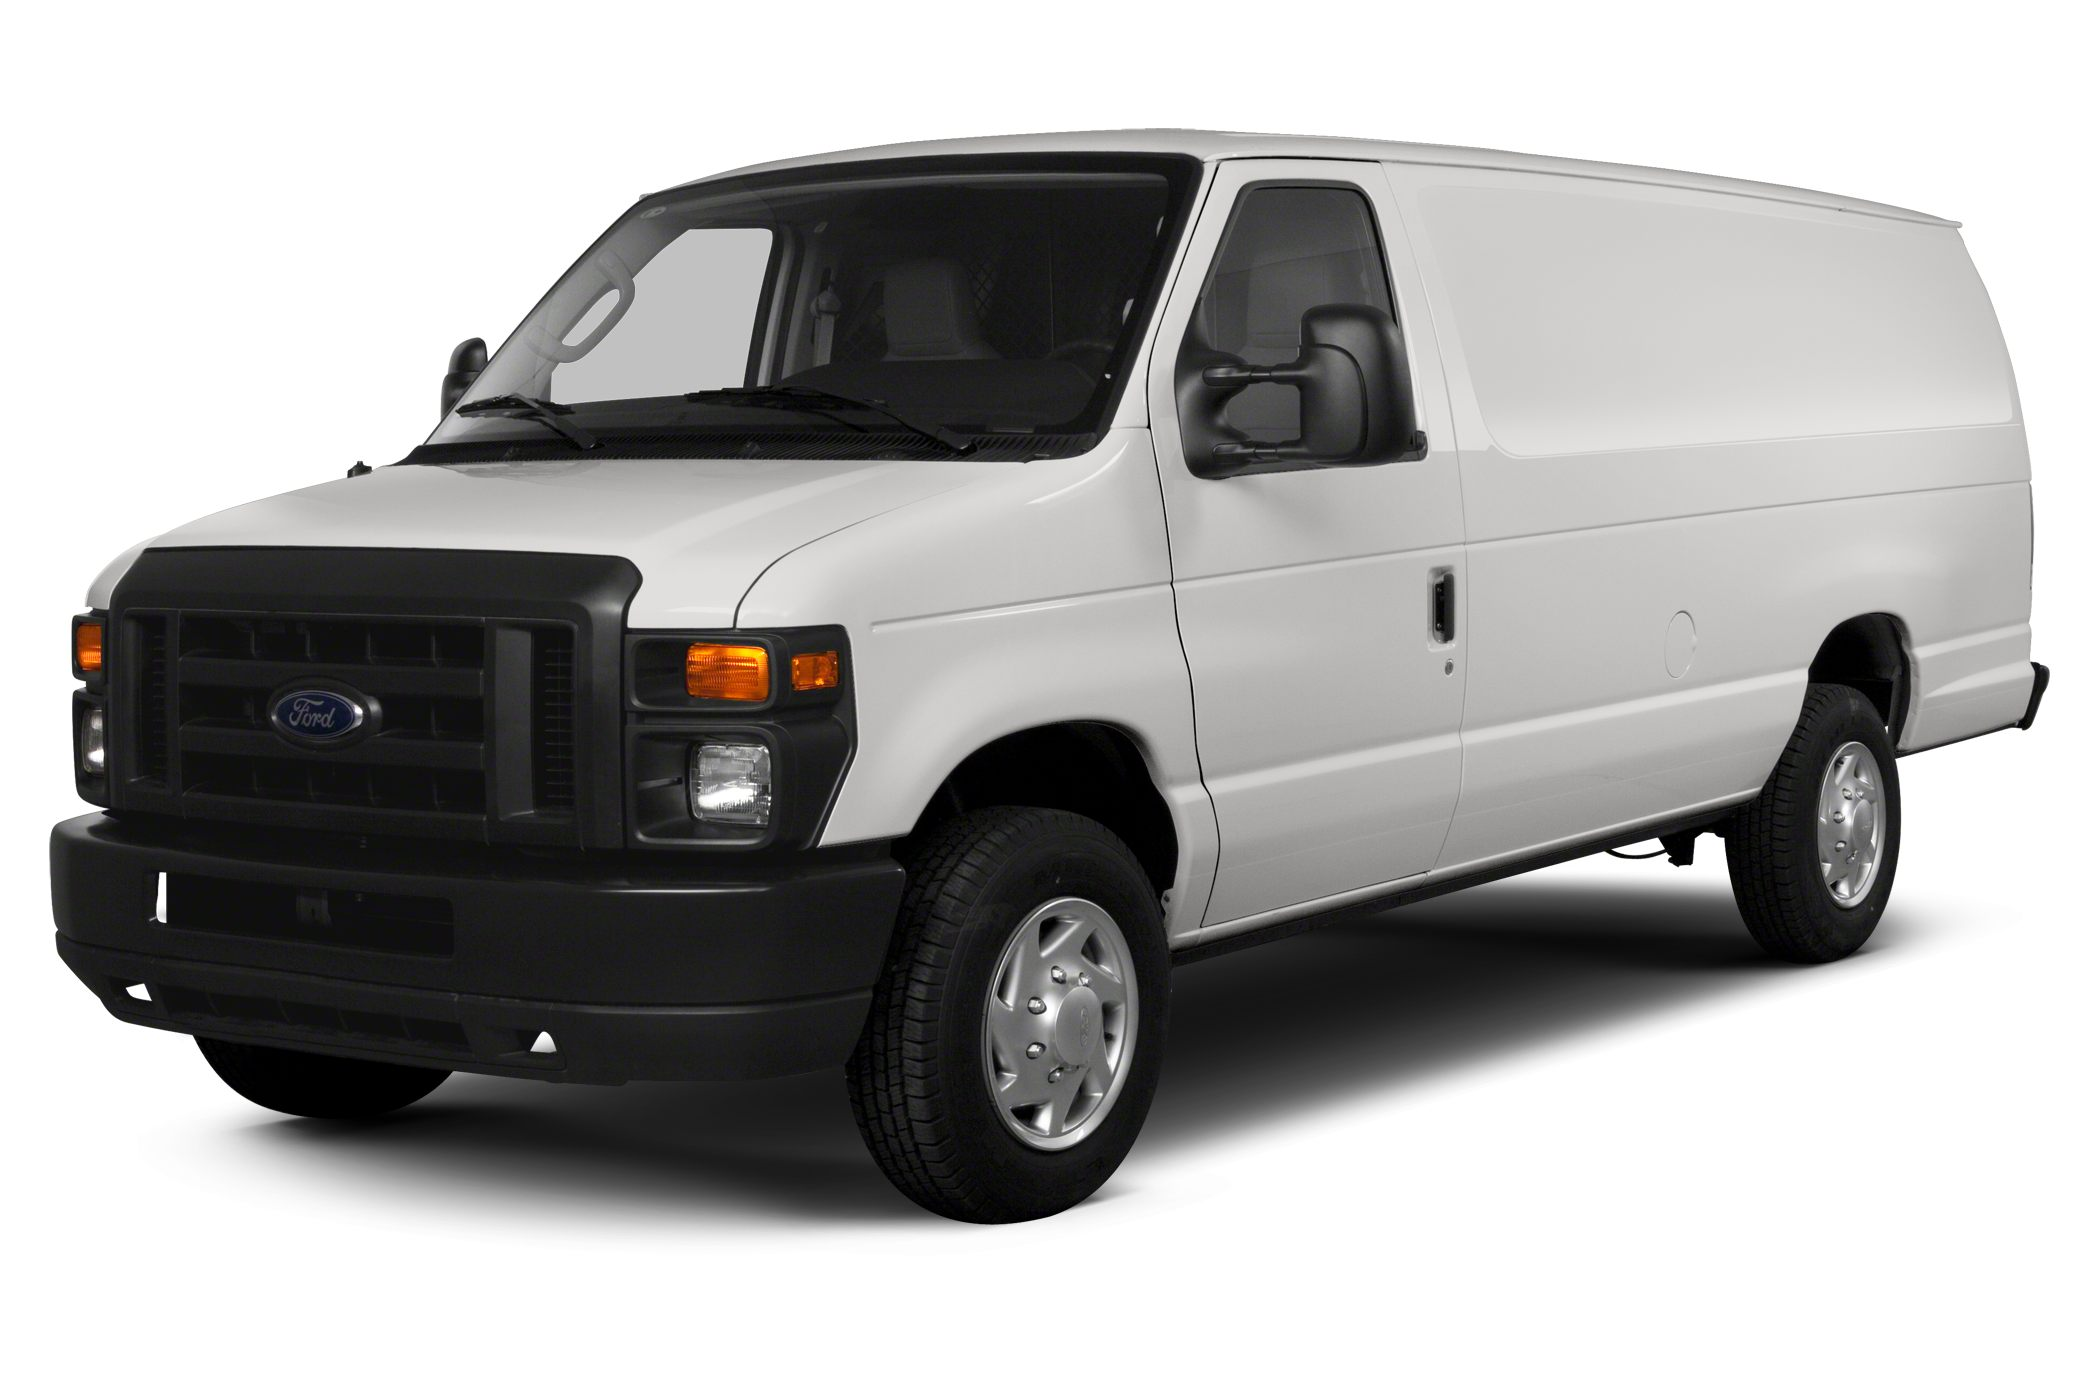 2013 Ford E 350 Super Duty Commercial Cargo Van Specs And Prices